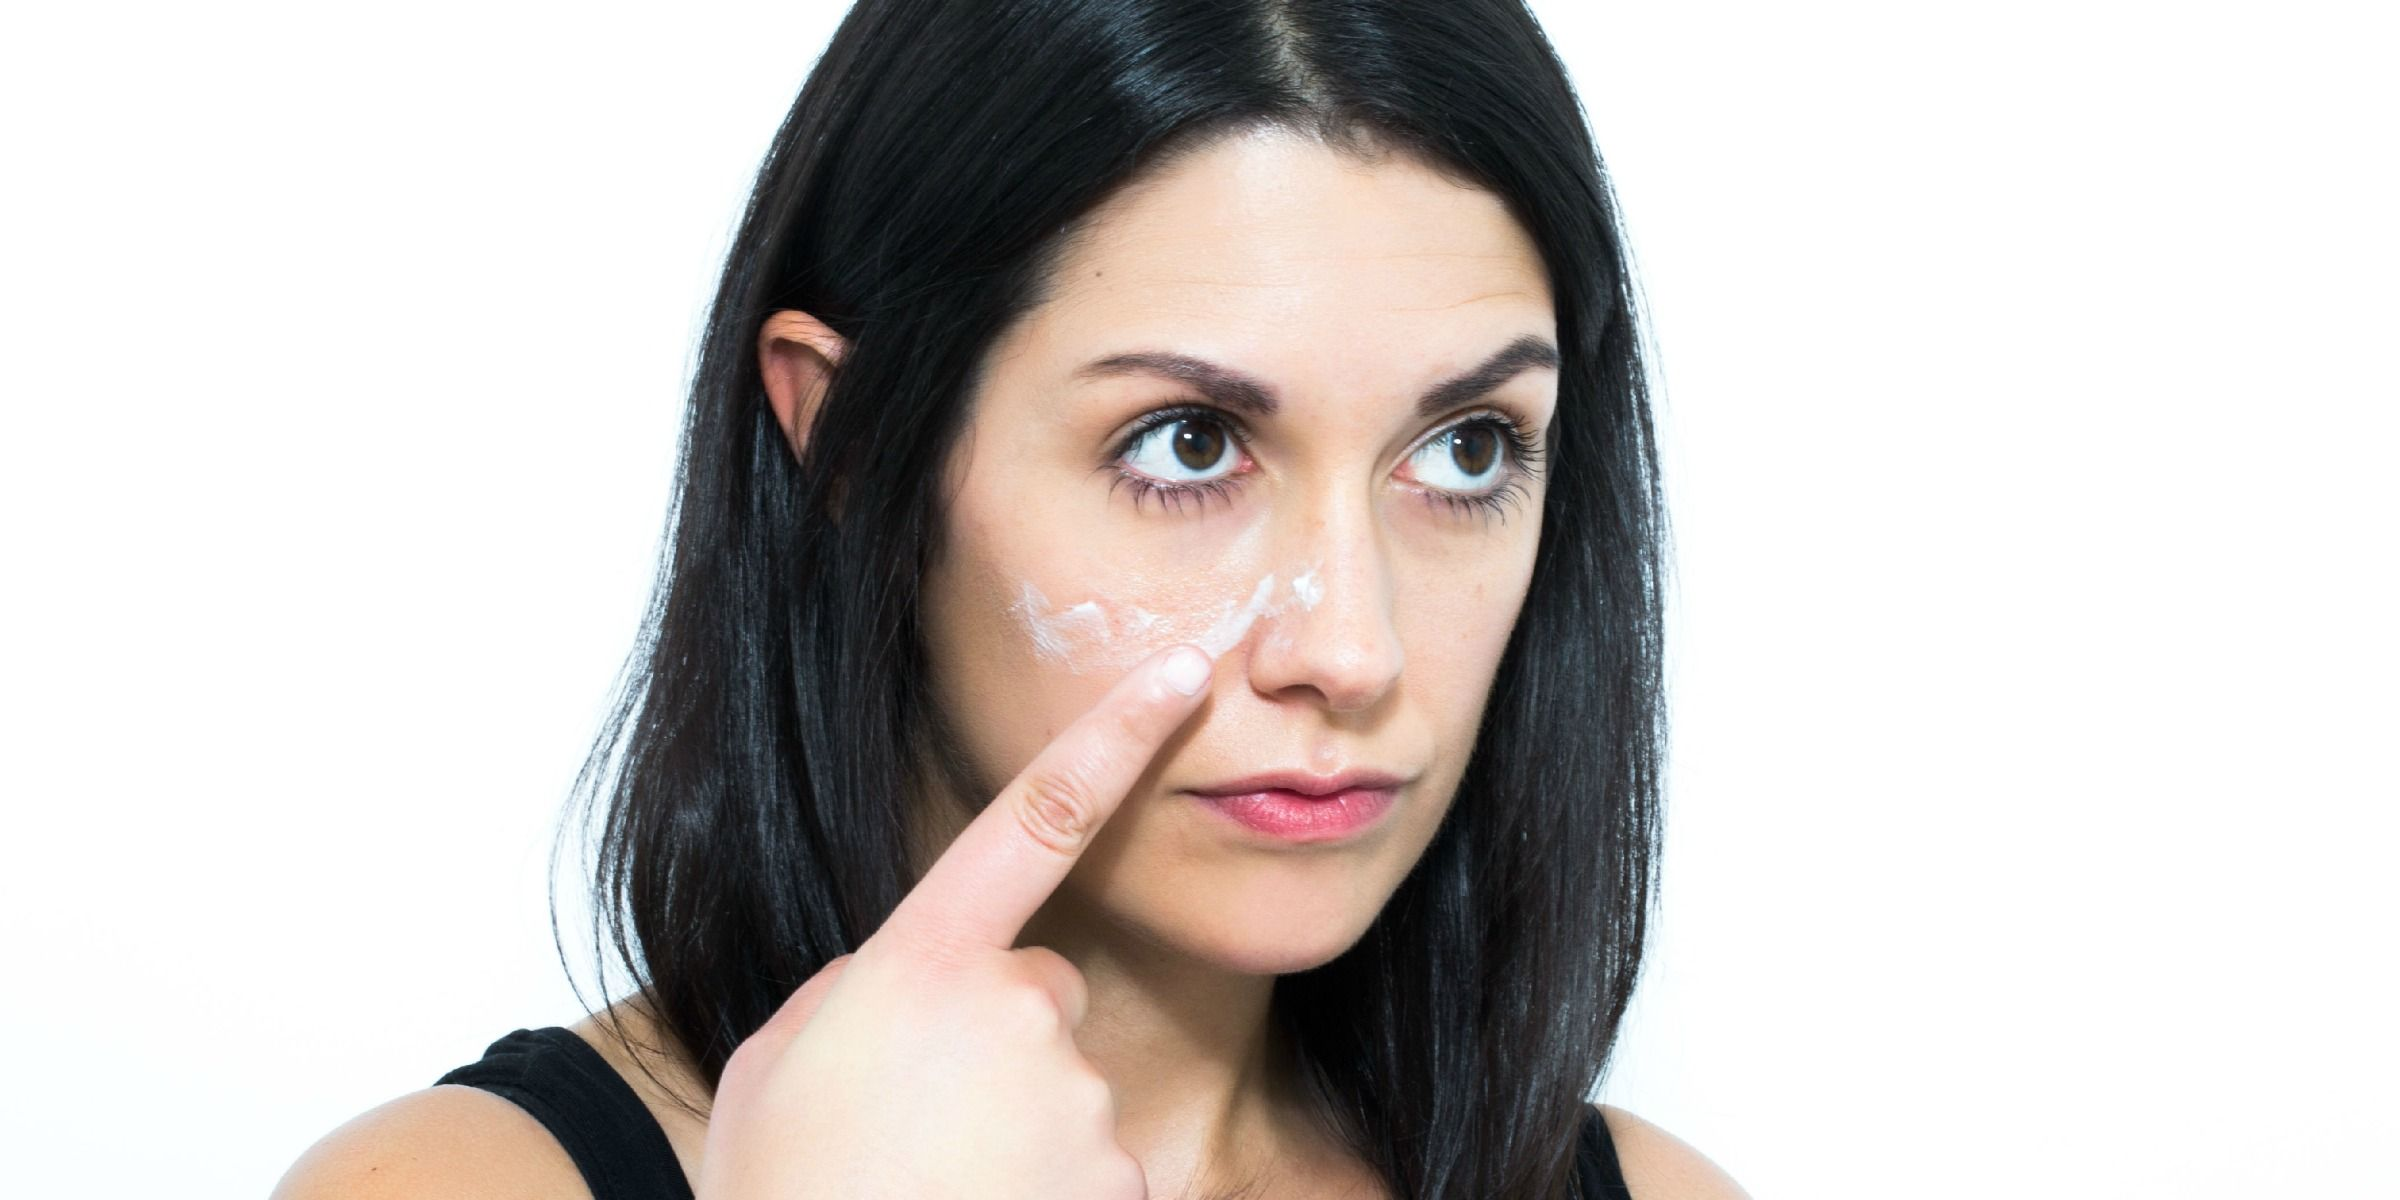 7 Bad Things That Happen When You Don't Use Moisturizer - Why You